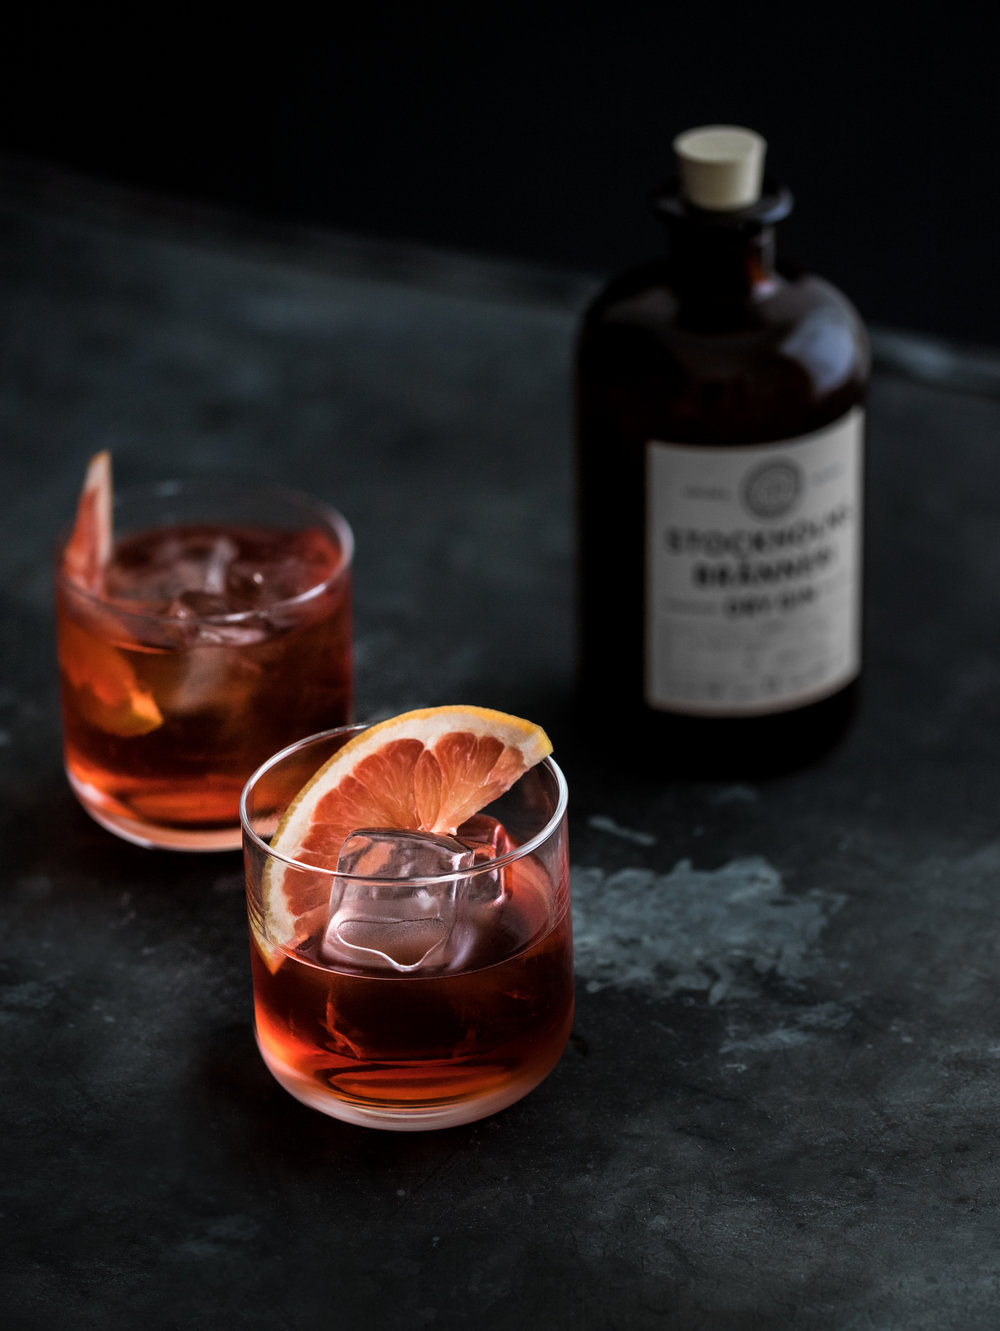 Negroni - Our Fav